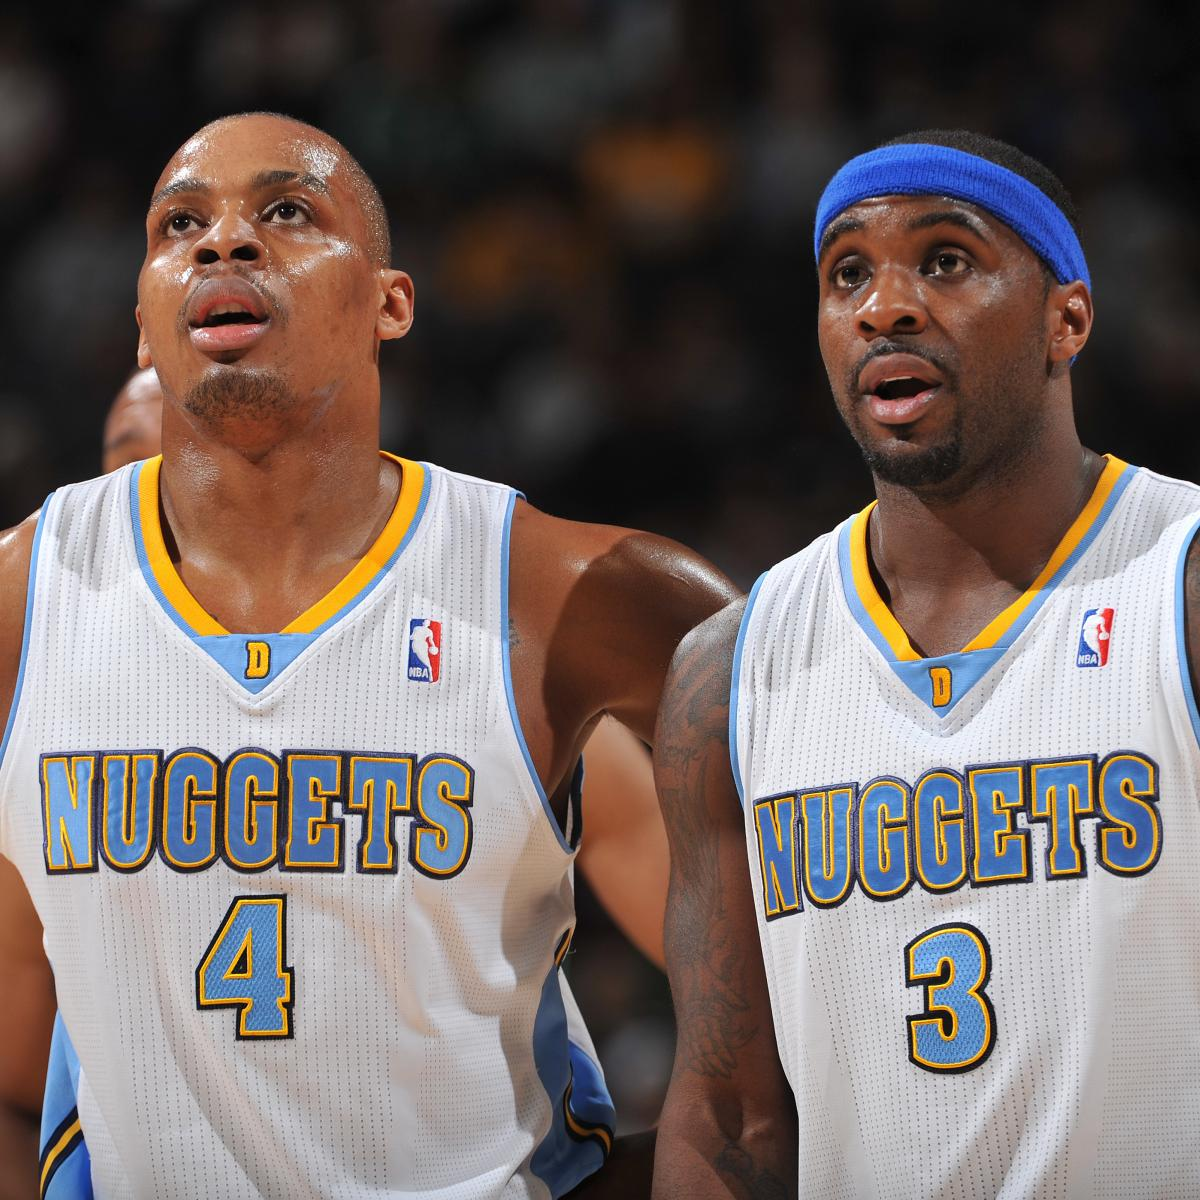 Denver Nuggets Famous Players: Which Denver Nuggets Players Are Benefiting Most From The